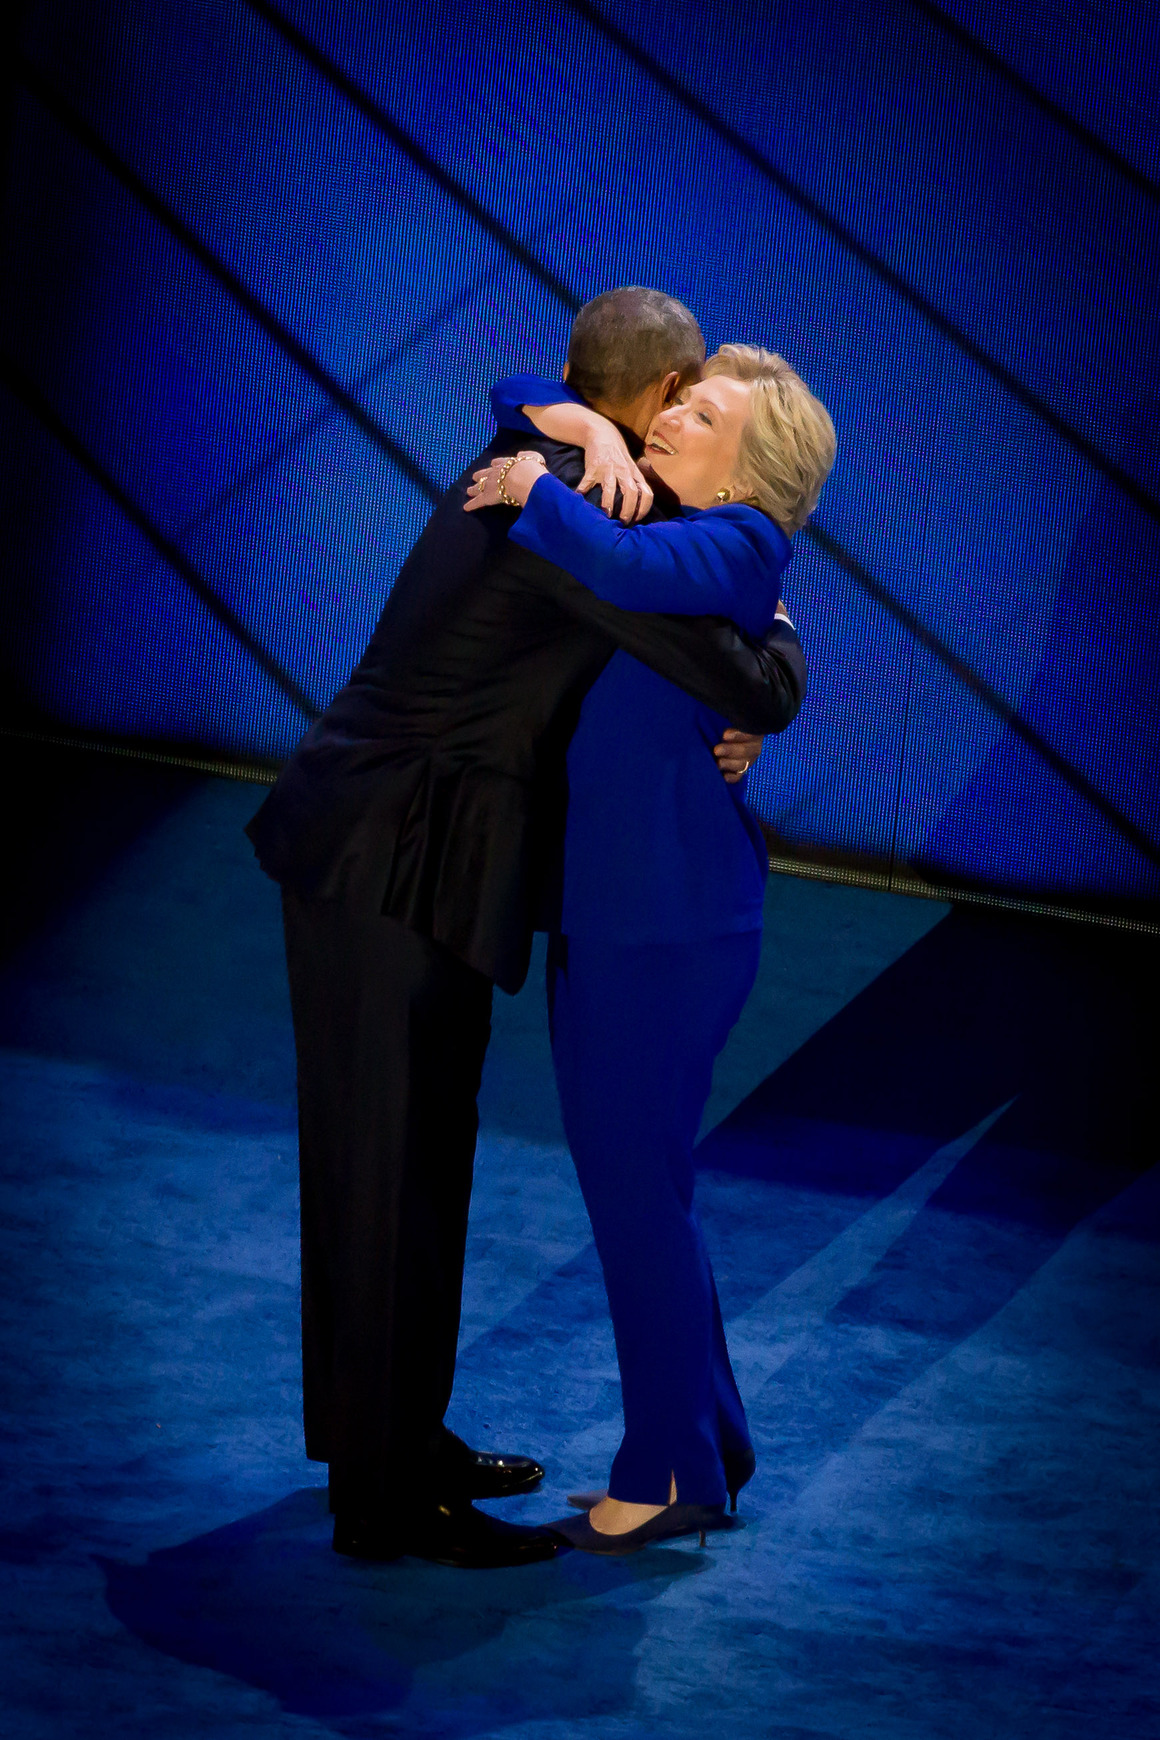 Barack and Hillary hug